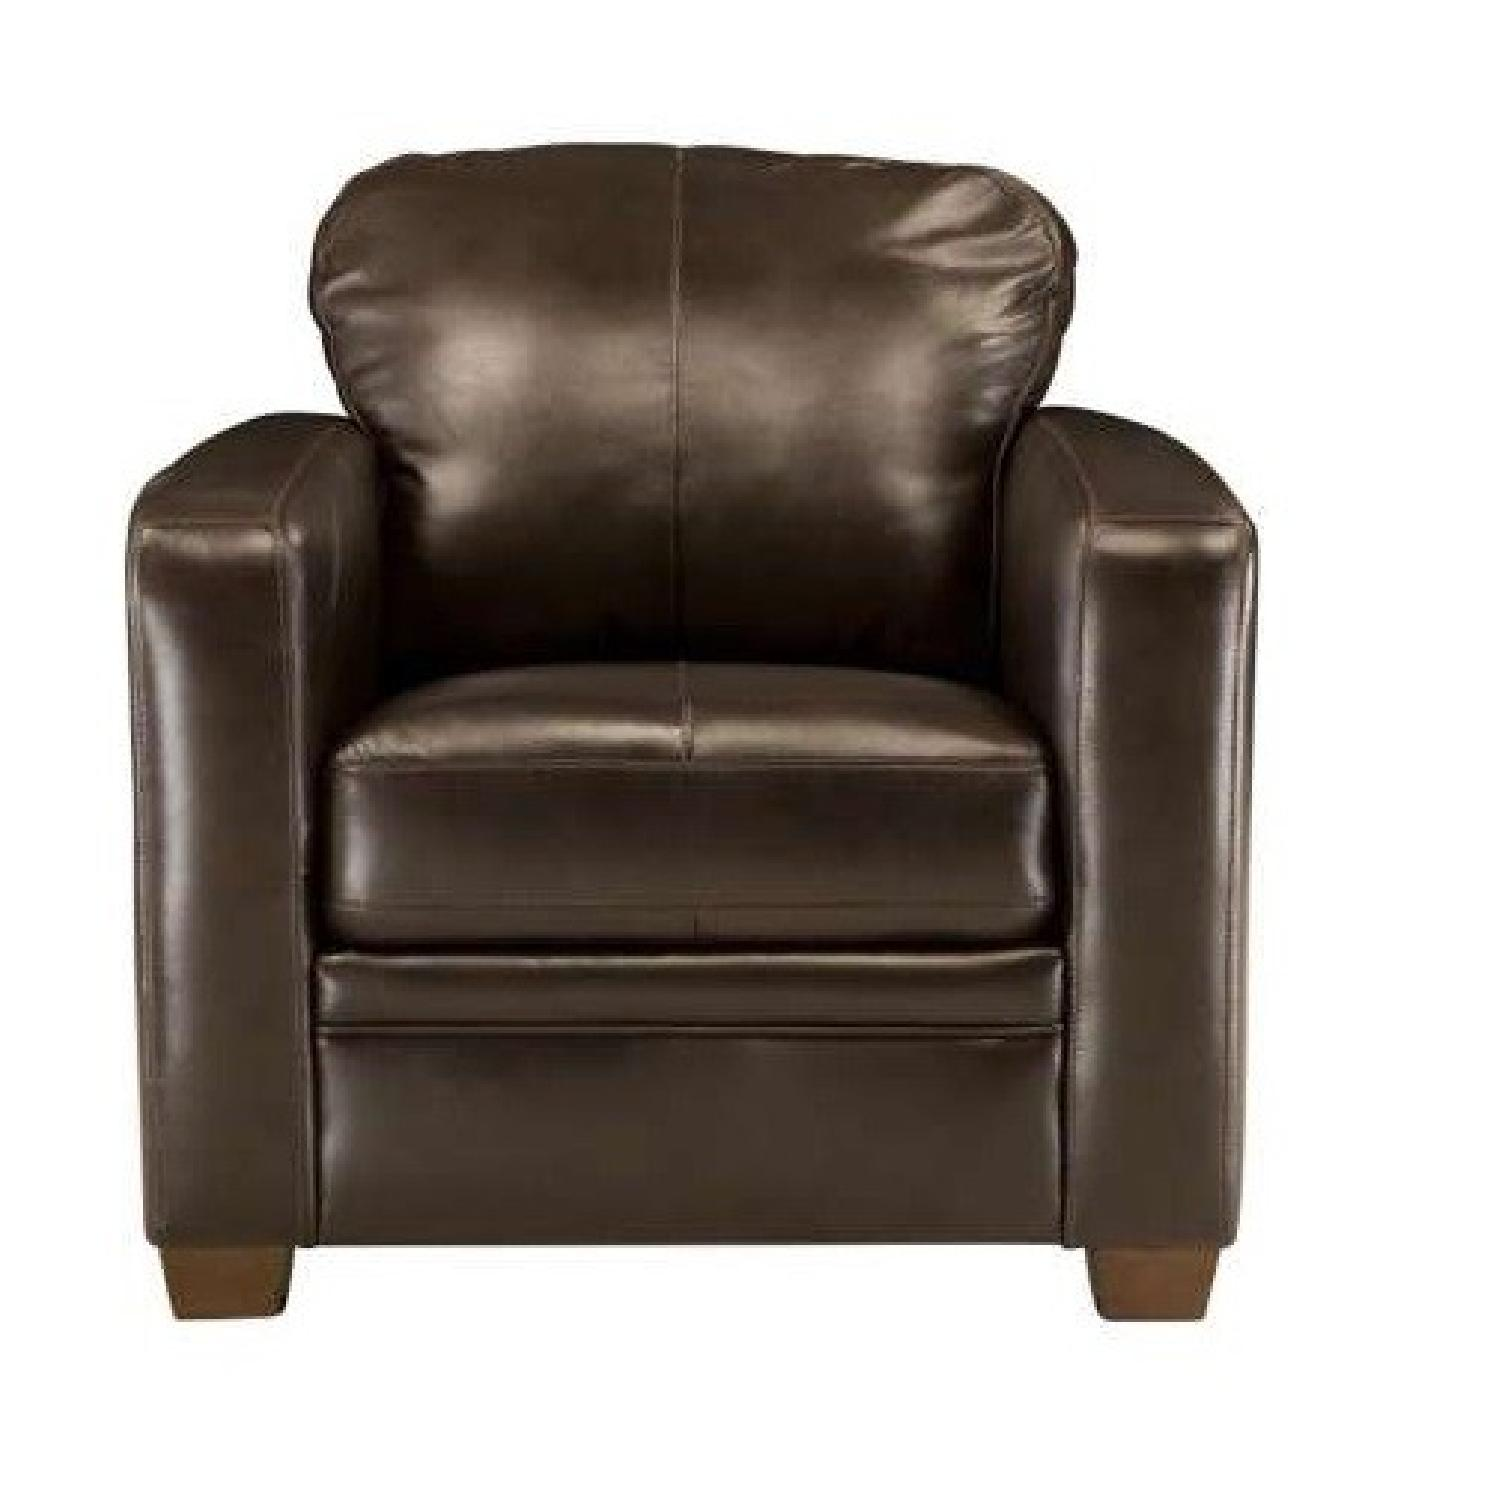 Raymour & Flanigan Trent Collection Leather Arm Chair AptDeco